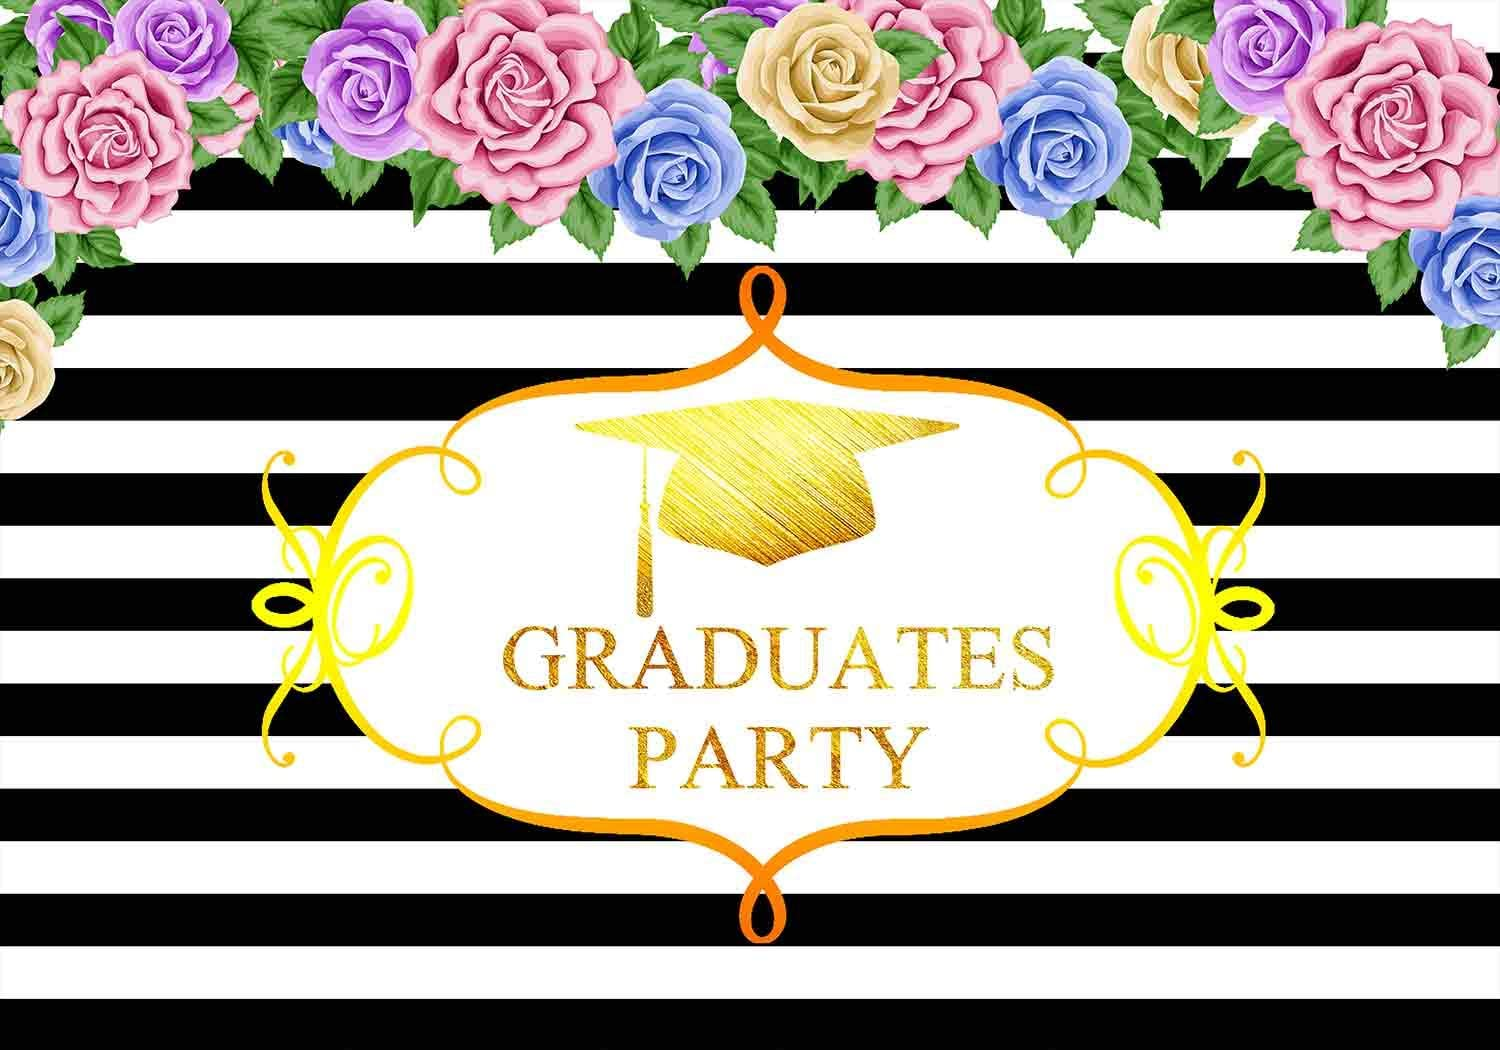 FLASIY 10x7ft Graduation Party Backdrop Black and White Stripes Flower Photography Background for Event Theme Party Photo Video Studio Props LHAY354